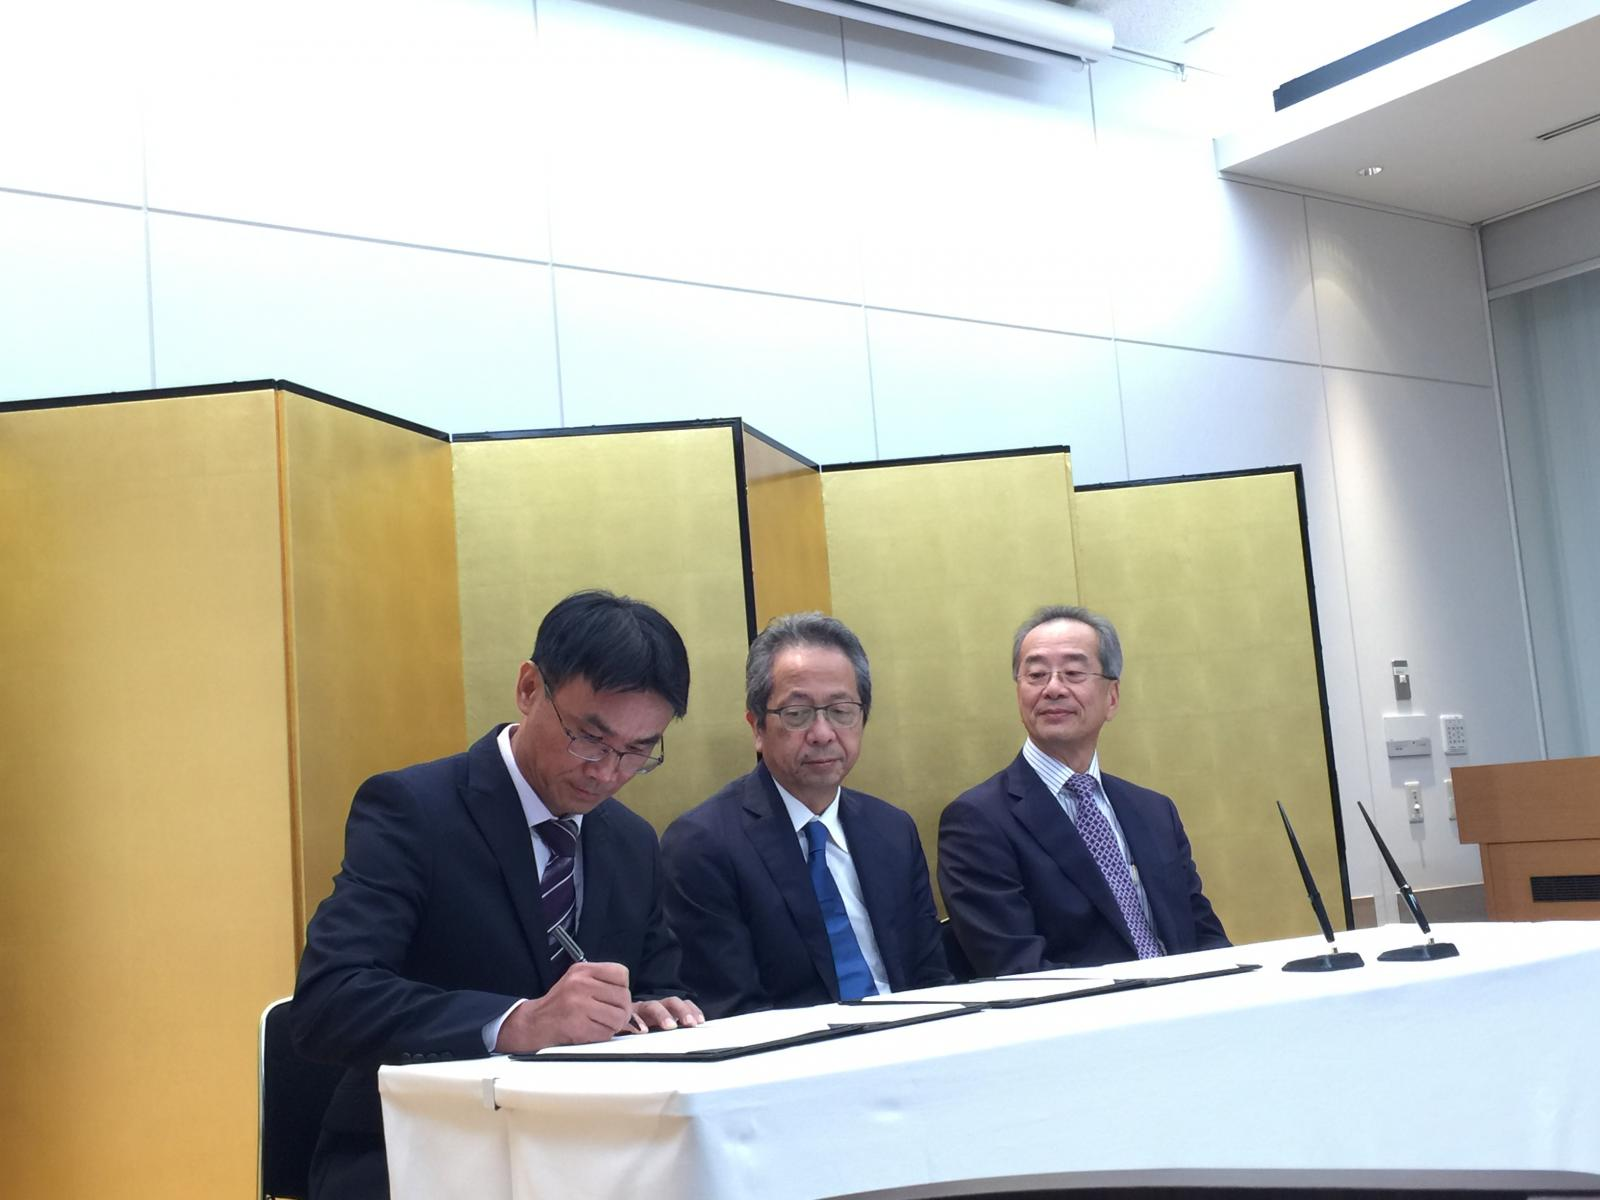 MITAGRI Chairman Chen Yu-jan and Farmind Corporation President Tatsuo Horiuchi sign a Memorandum of Cooperation in Tokyo.